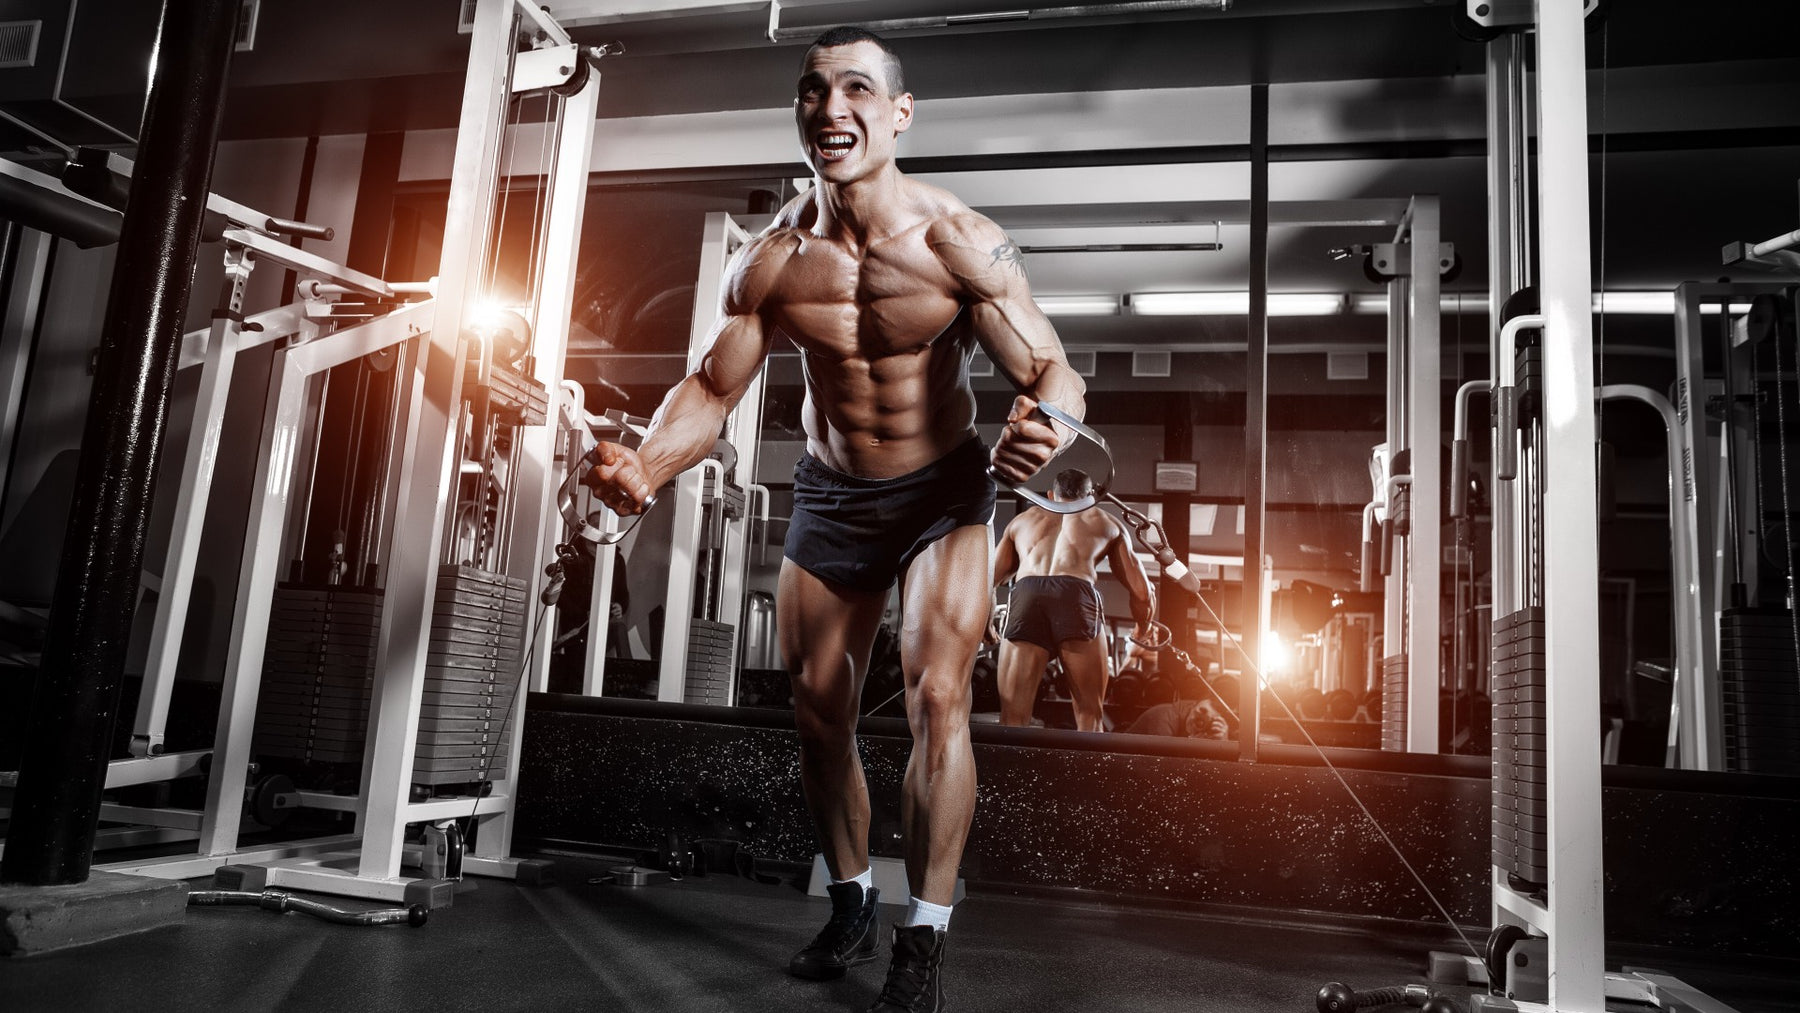 Pre-Exhaust Training - Power Up Your Muscle Building Efforts